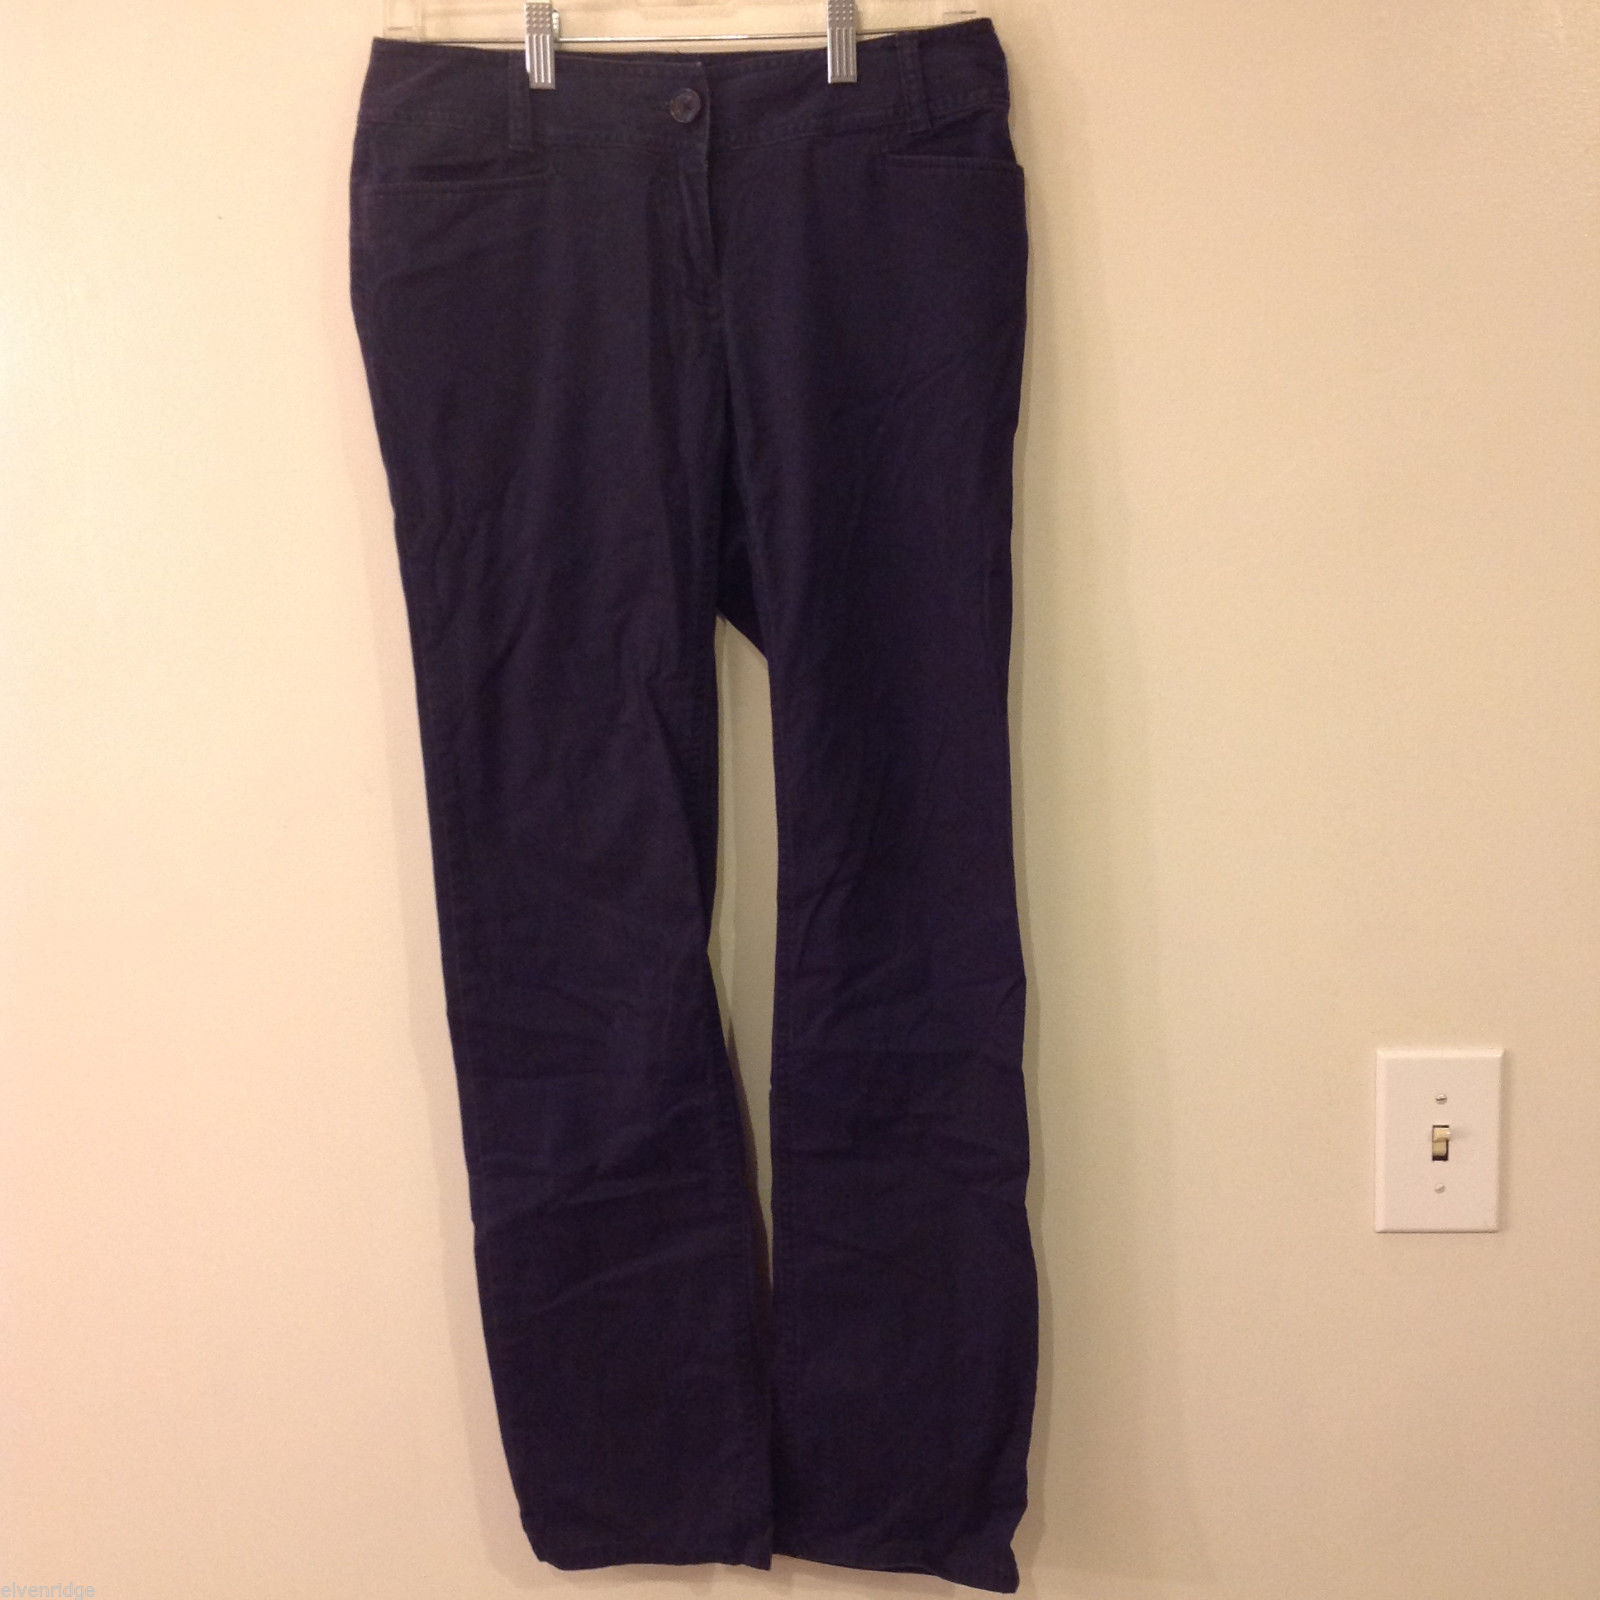 J. Jill Womens' Dark Navy Pants with stretch, missing or removed tag, Size 10-12